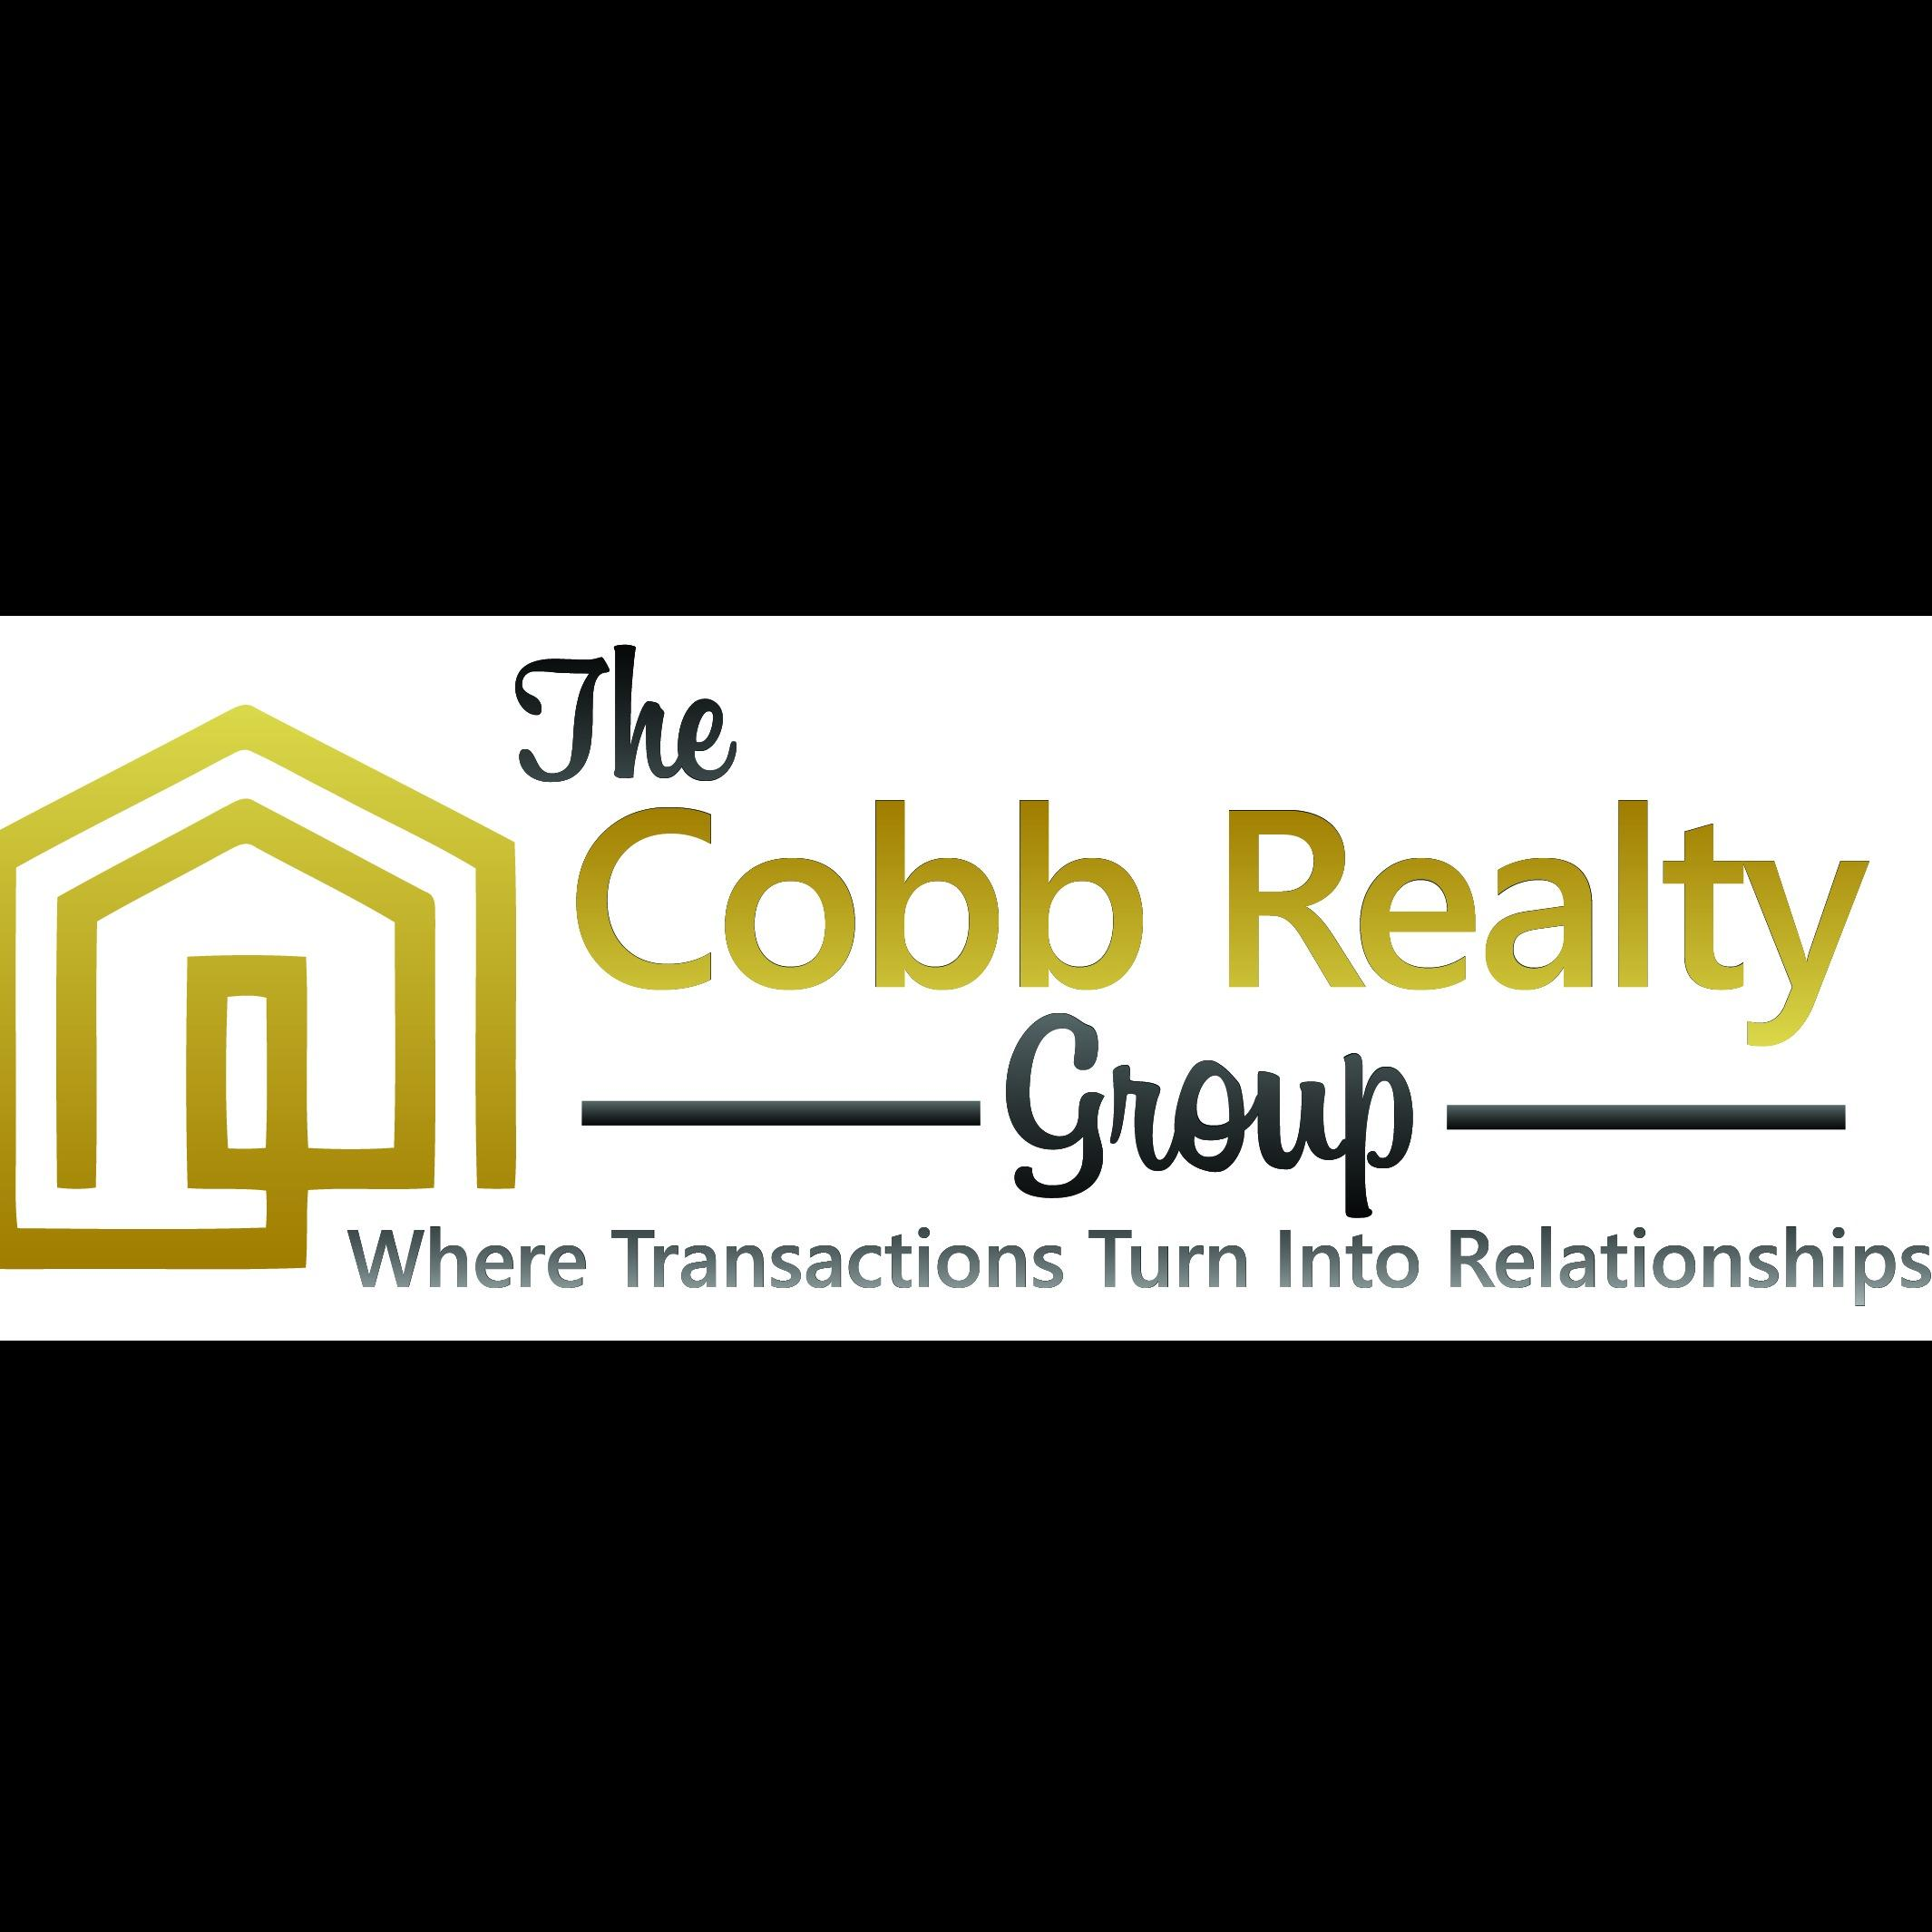 The Cobb Realty Group, powered by Holleran Real Estate & Consulting, LLC.